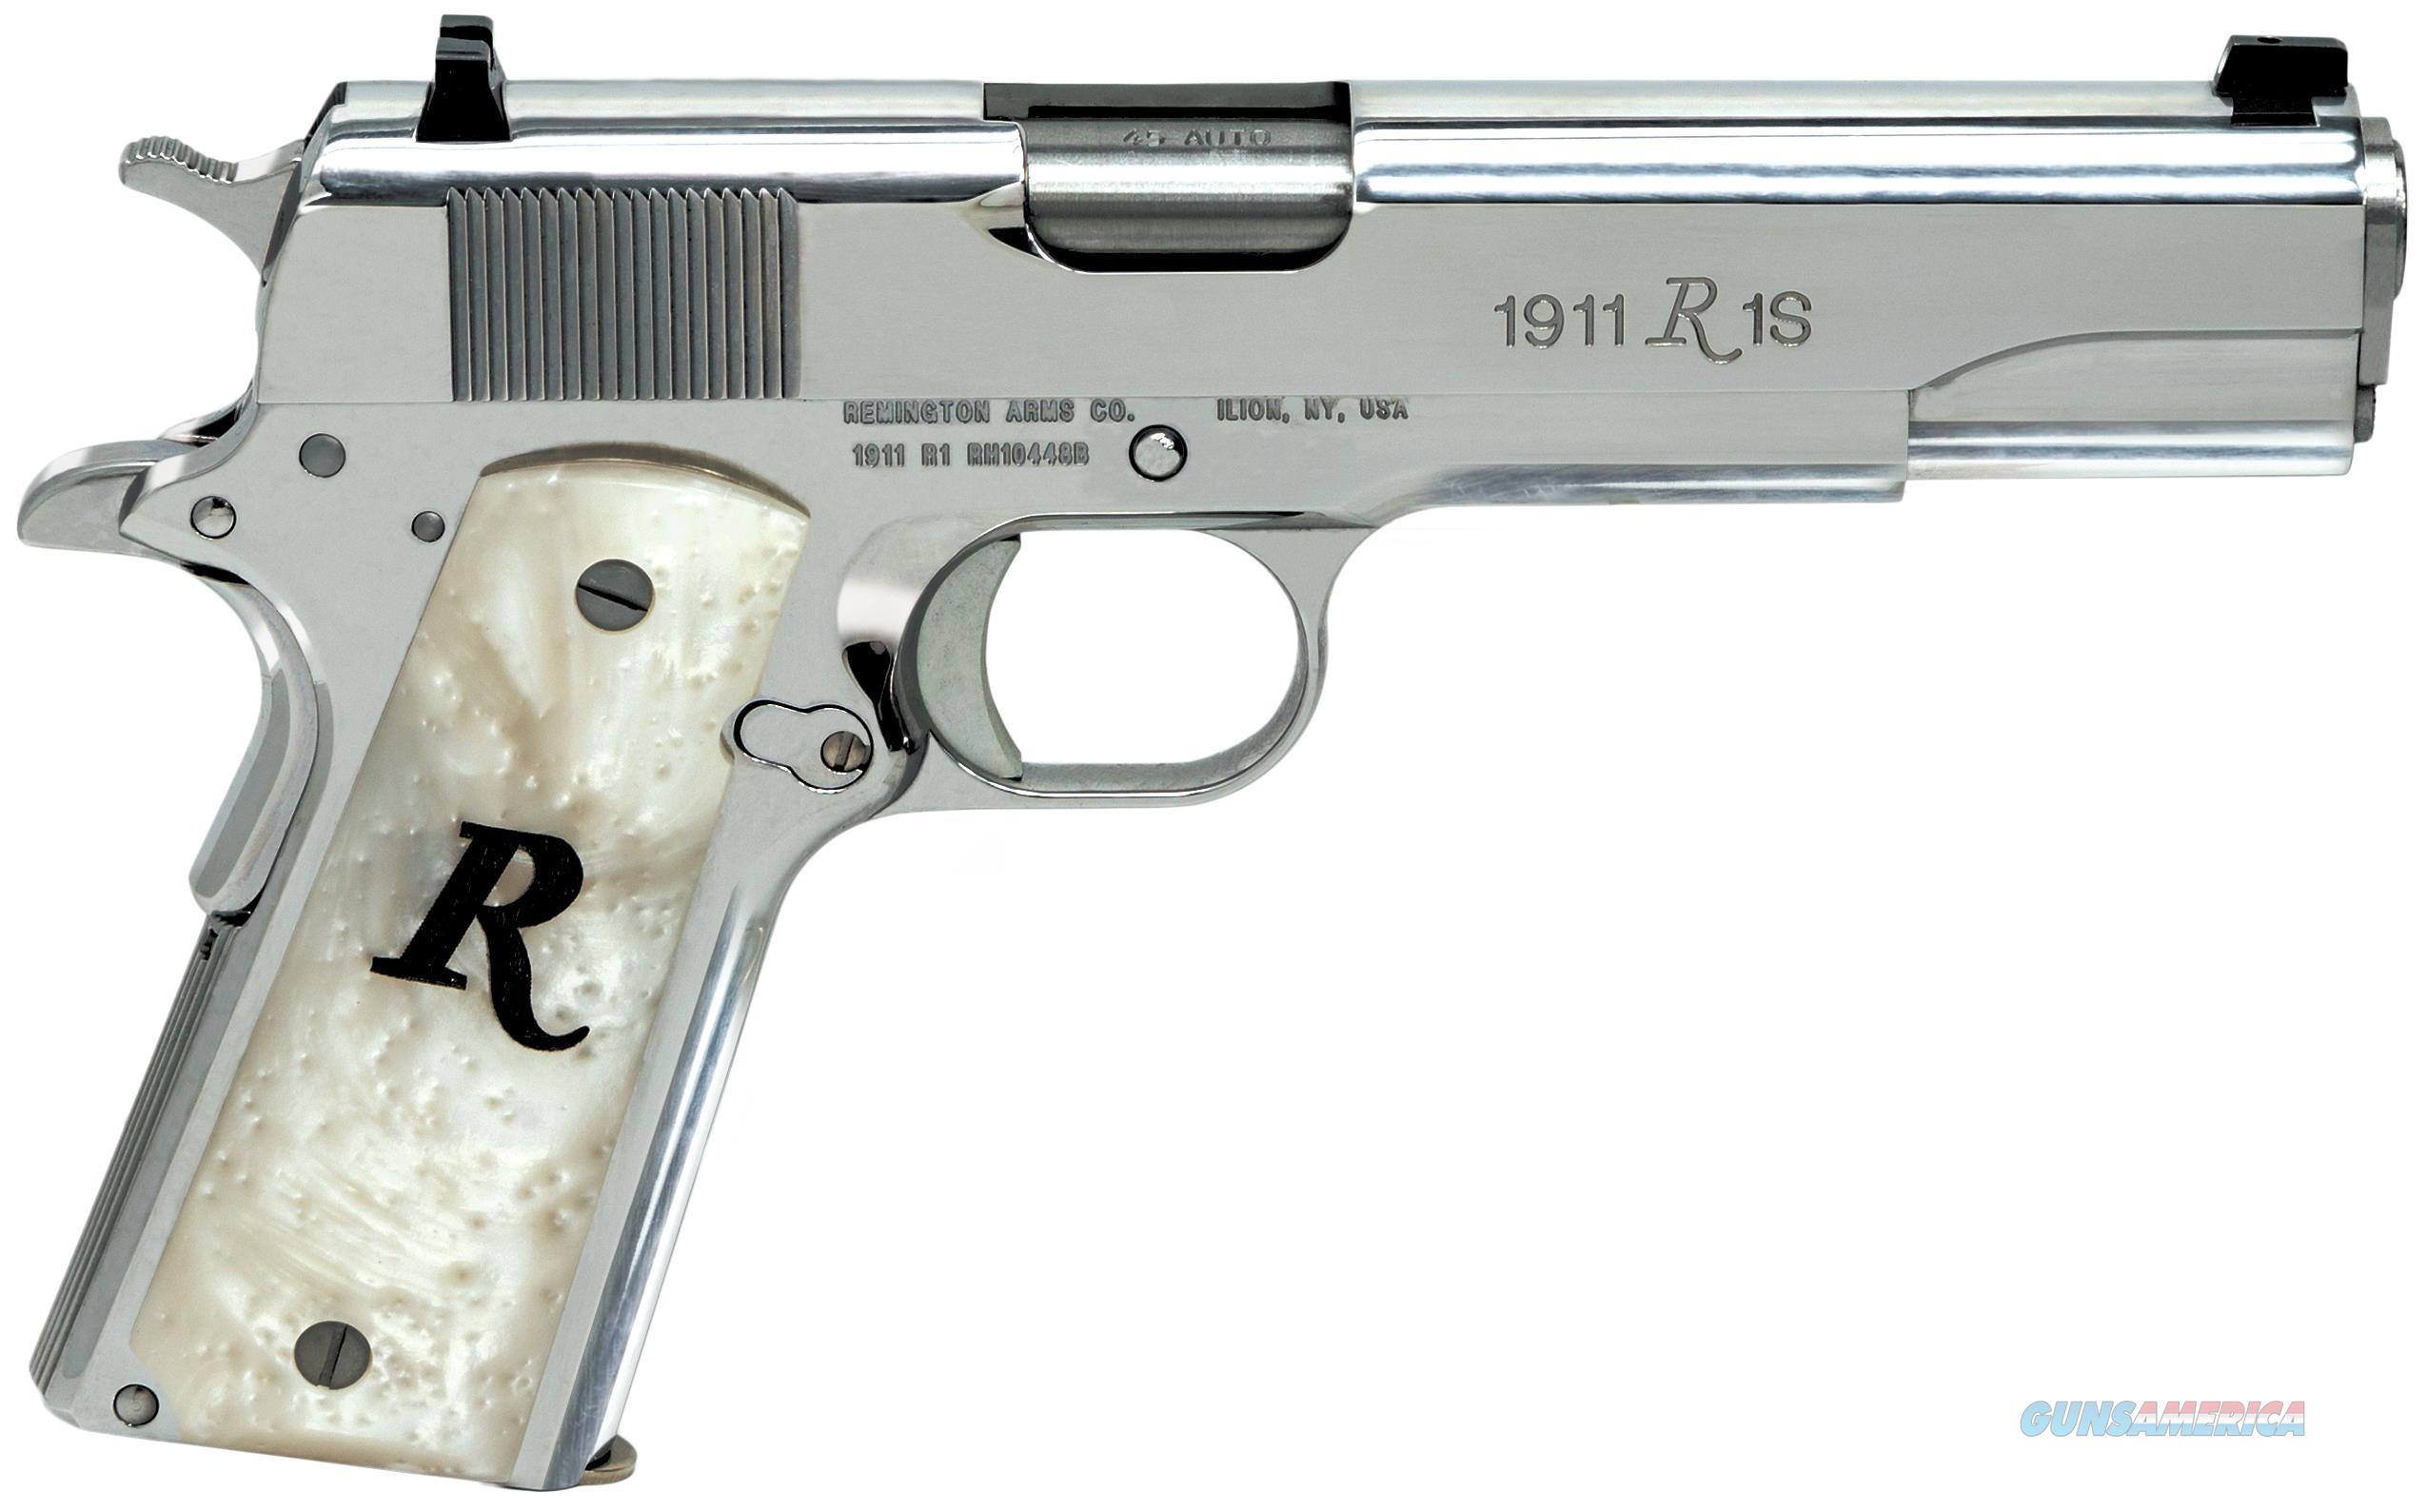 "REMINGTON ARMS FIREARMS 96304 1911 R1 SAO 45ACP 5"" HIGH POLISH SS 96304  Guns > Pistols > Remington Pistols - Modern > 1911"